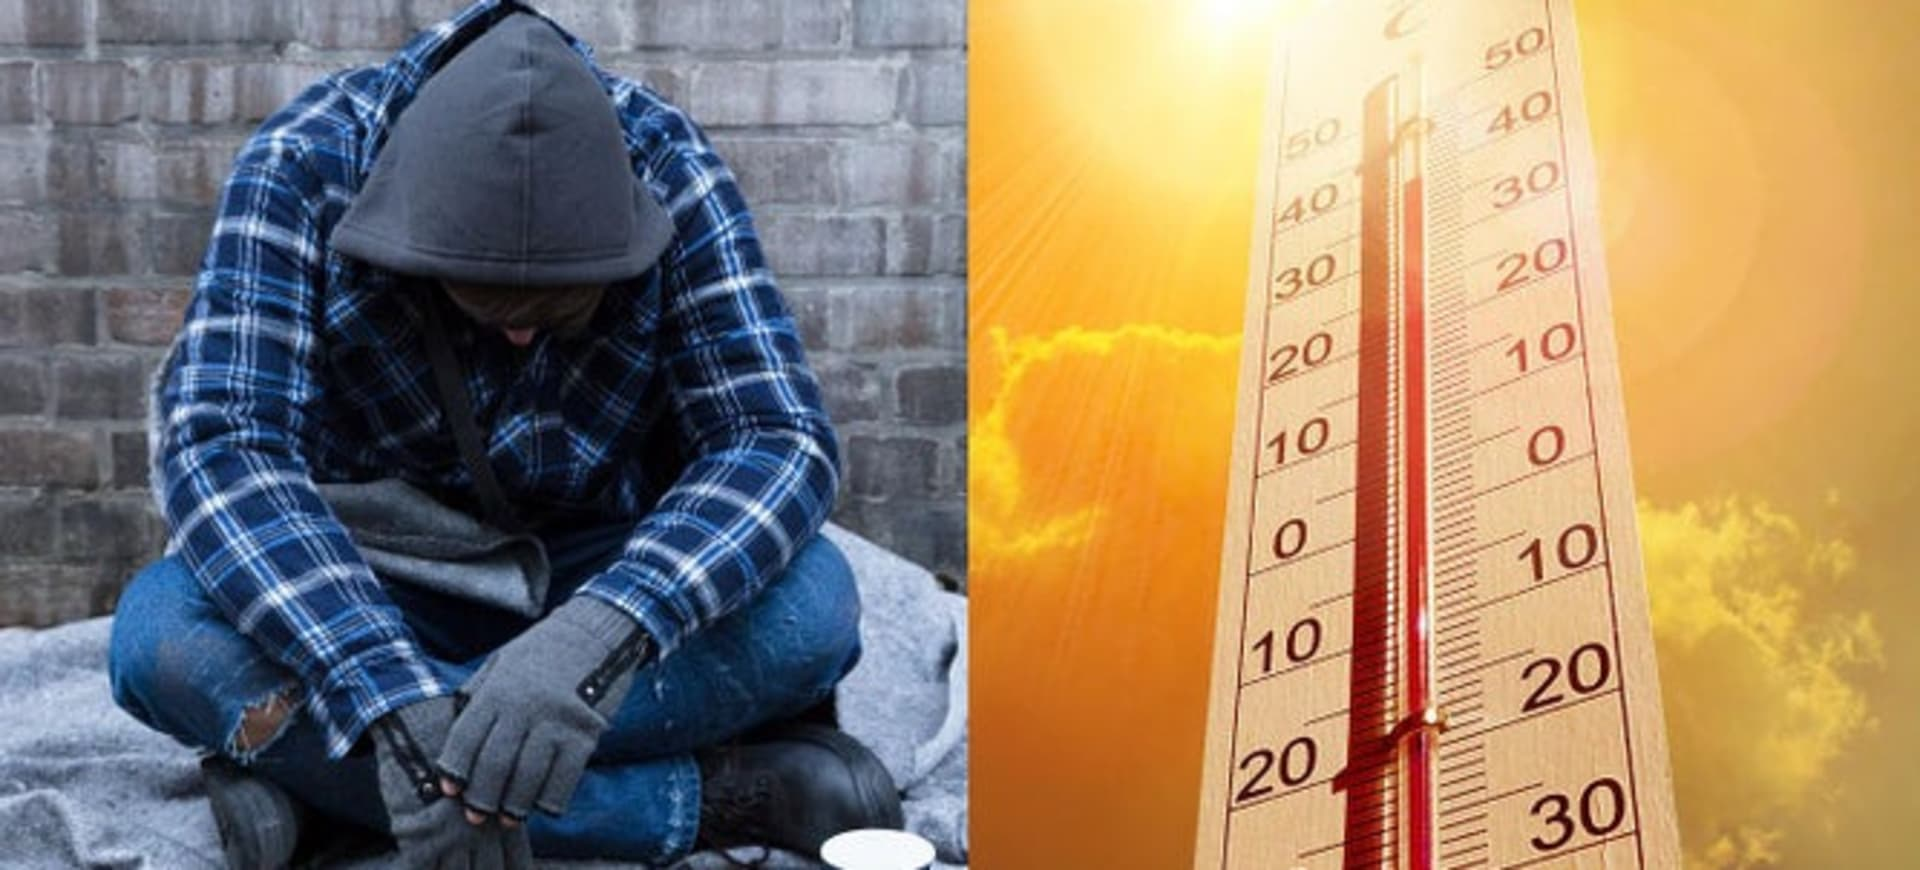 How to help a homeless person you see sleeping rough in the scorching heat